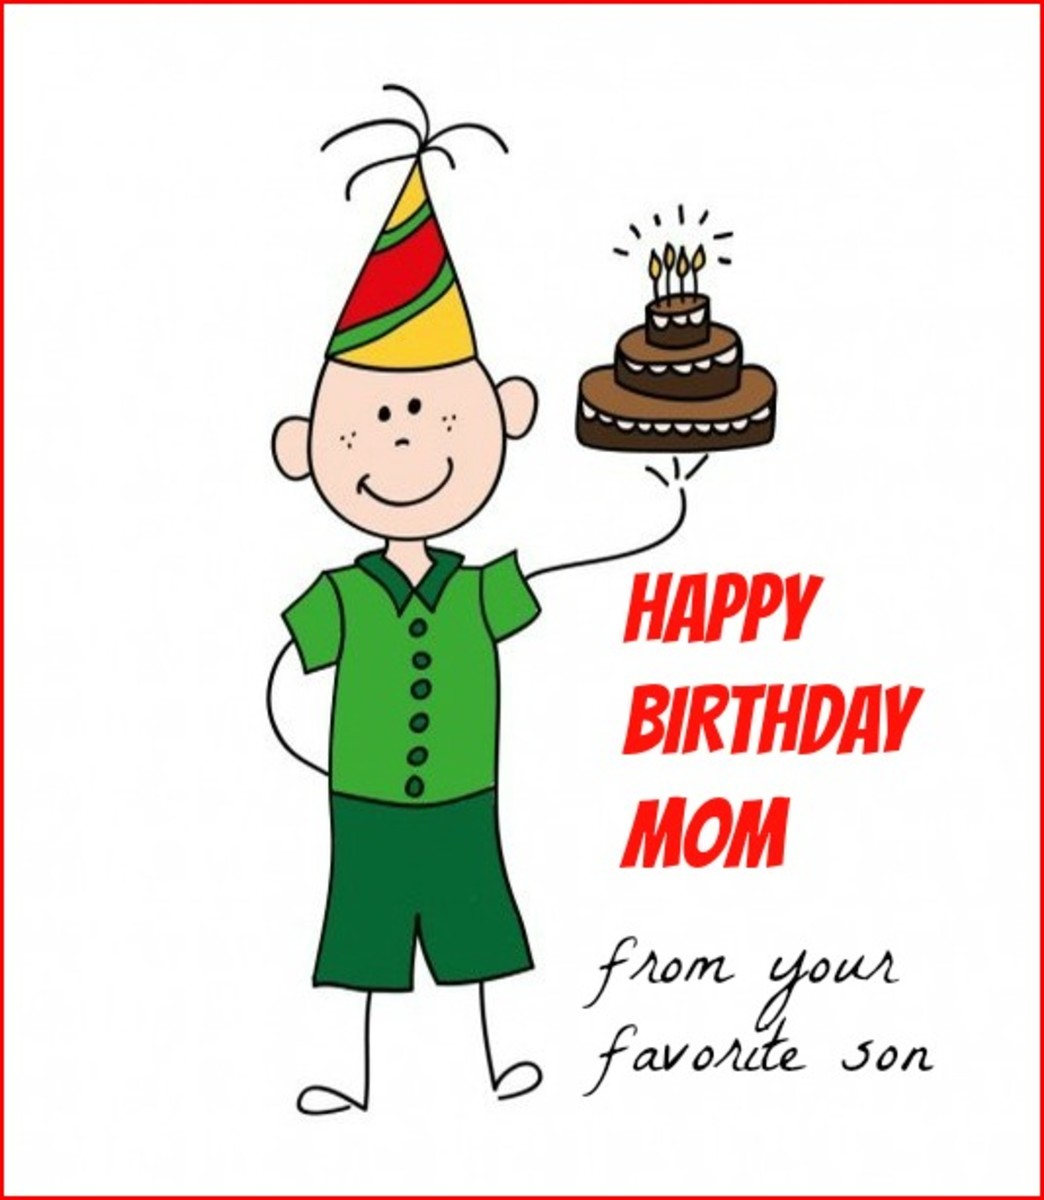 Happy Birthday Mom Quotes From Son In Hindi: Mother To Son Birthday Quotes. QuotesGram